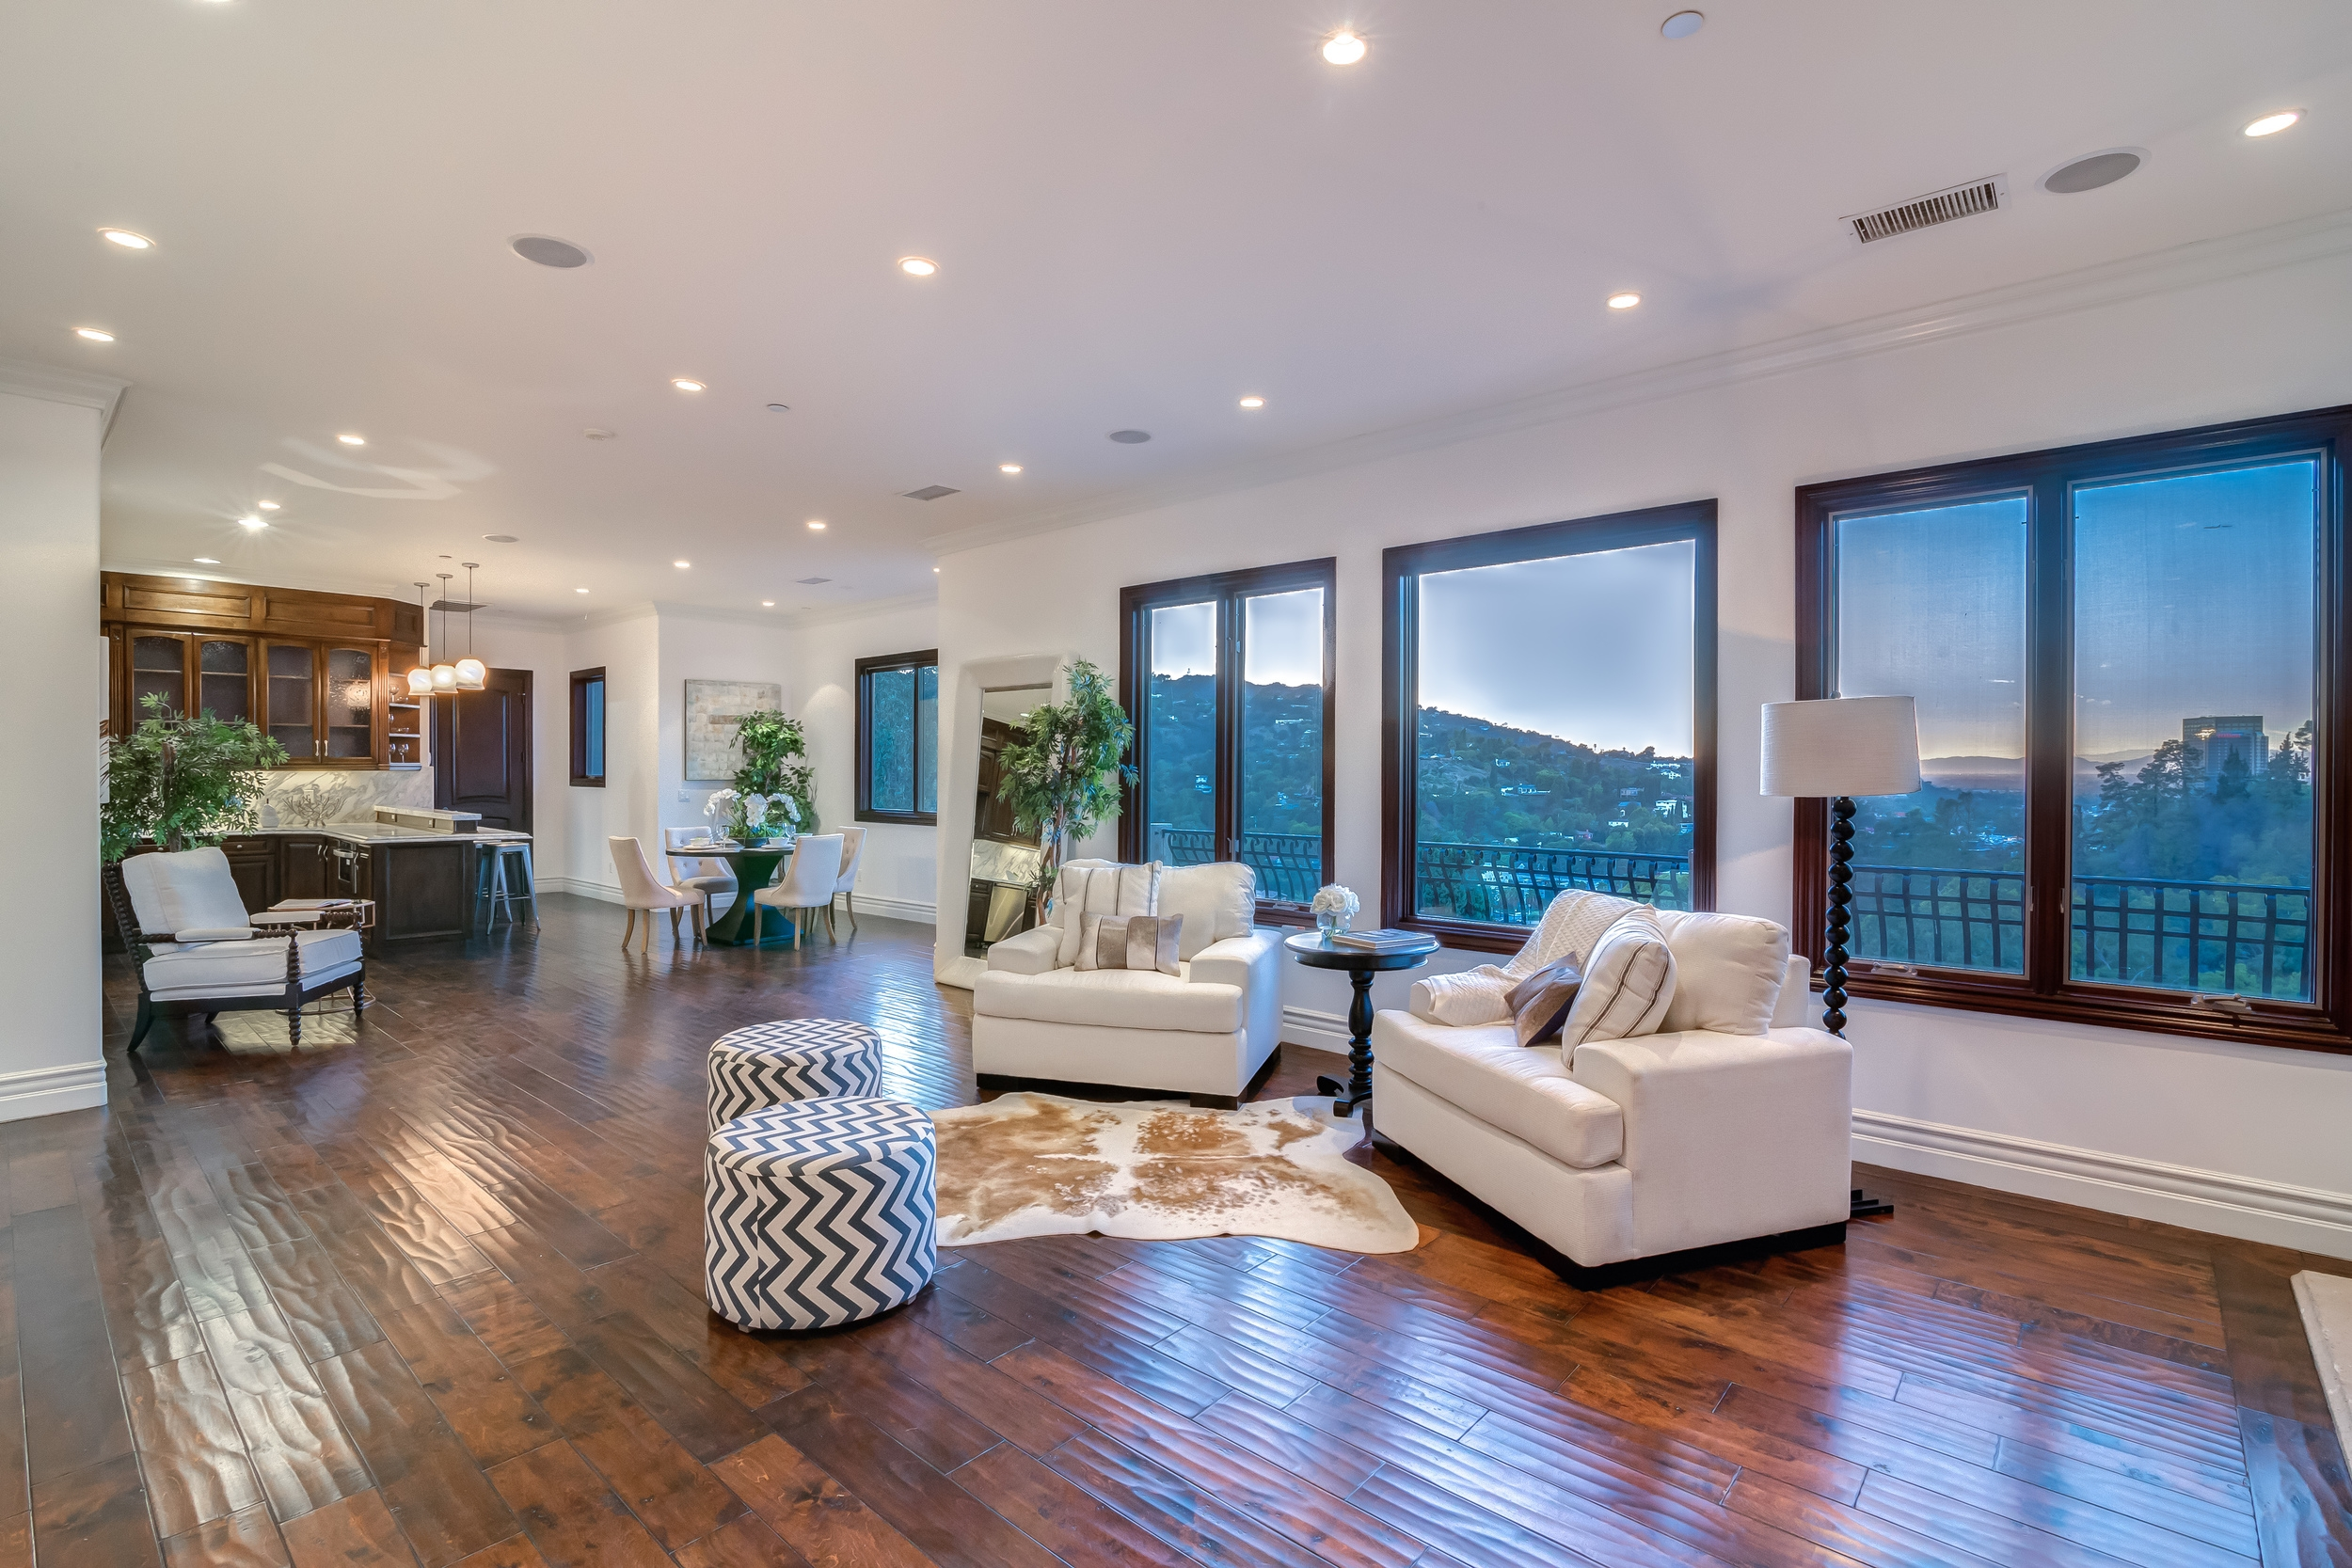 3343 N KNOLL DR., $2,099,000 - SOLD!